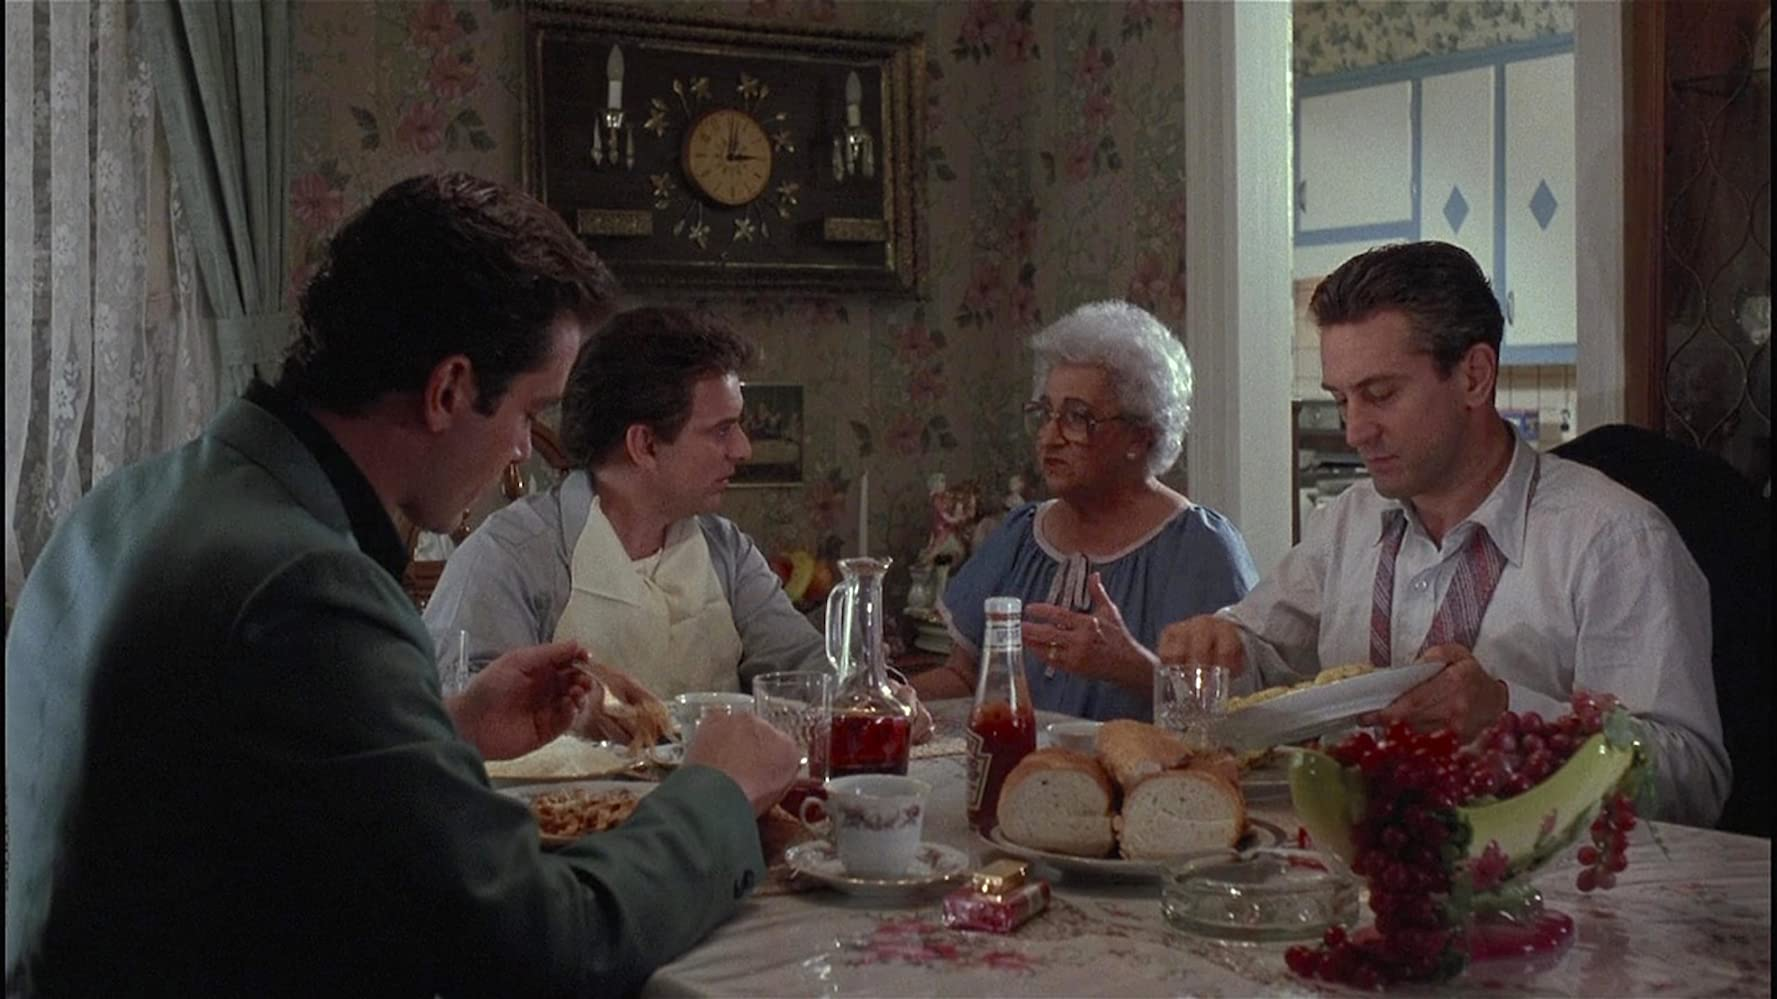 Robert De Niro, Ray Liotta, Joe Pesci, and Catherine Scorsese in Goodfellas (1990). The four are sitting around a small dining table in a family home, an assortment of pasta, bread, fruit, and condiments filling the table. The three  Italian American men all wear dress shirts and have similarly cropped brown hair. Mrs DeVito (Scorsese) sits in the middle, she is an elderly woman with very curly short white hair and large 80s-style glasses, wearing a blue dress. She addresses the boys in conversation.